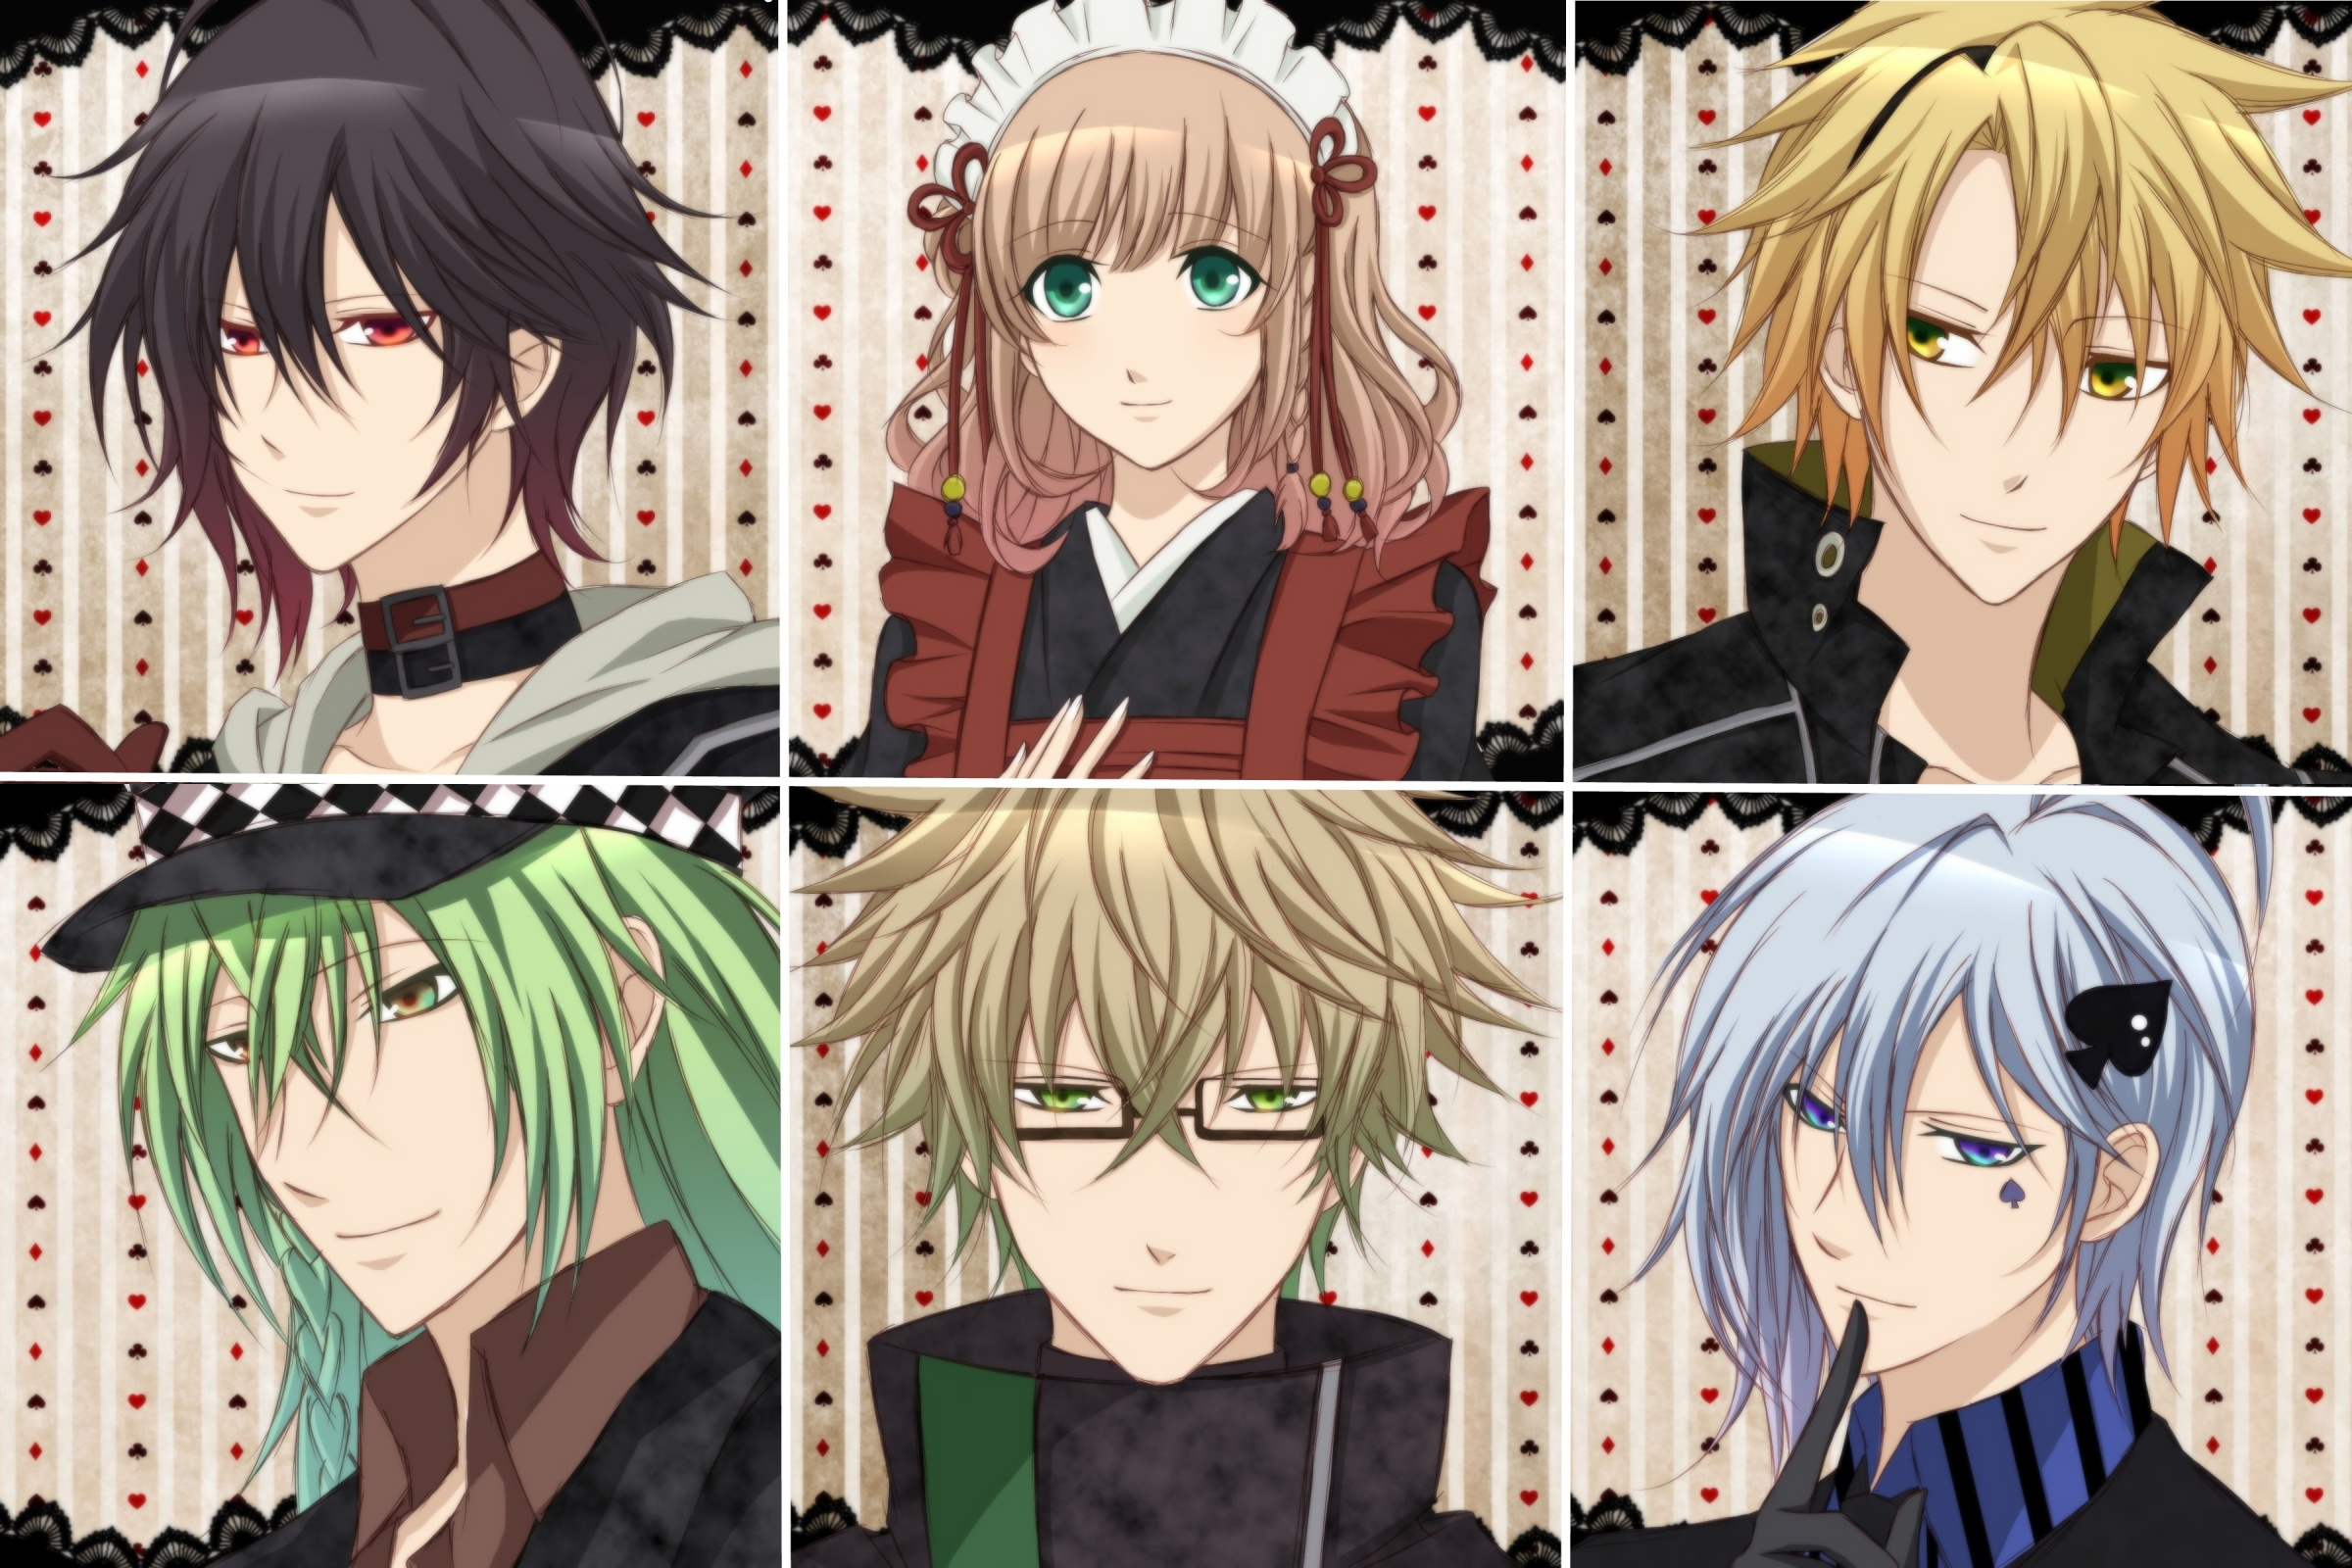 Amnesia Wallpapers Anime Hq Amnesia Pictures 4k Wallpapers 19